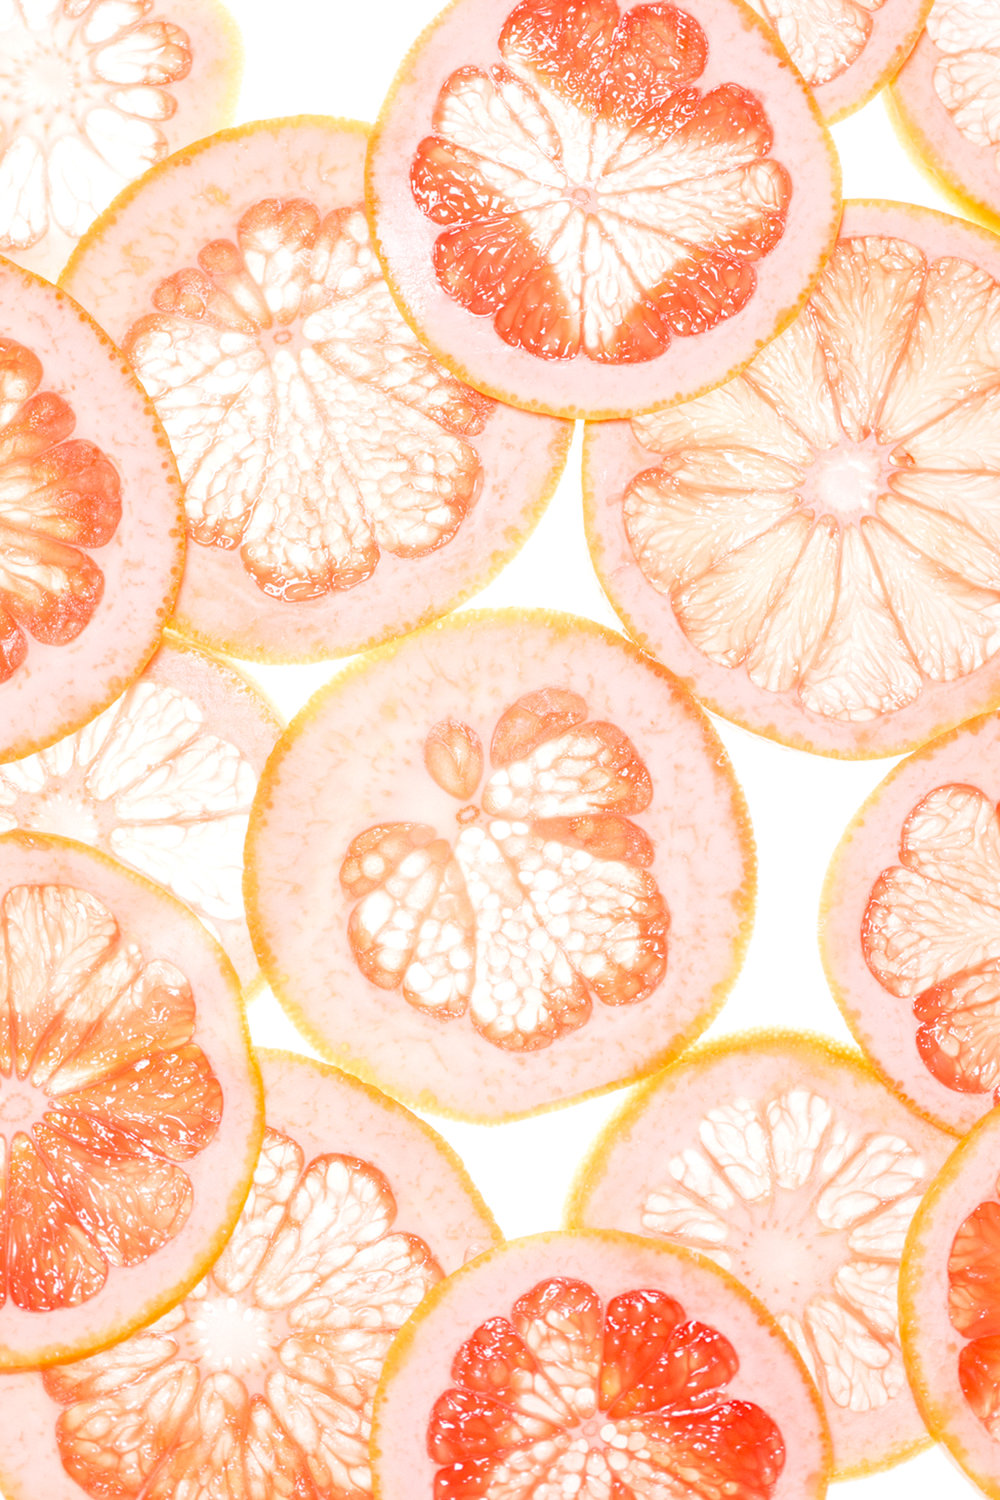 Jimena Peck Denver Lifestyle Food Photographer Citrus Slices